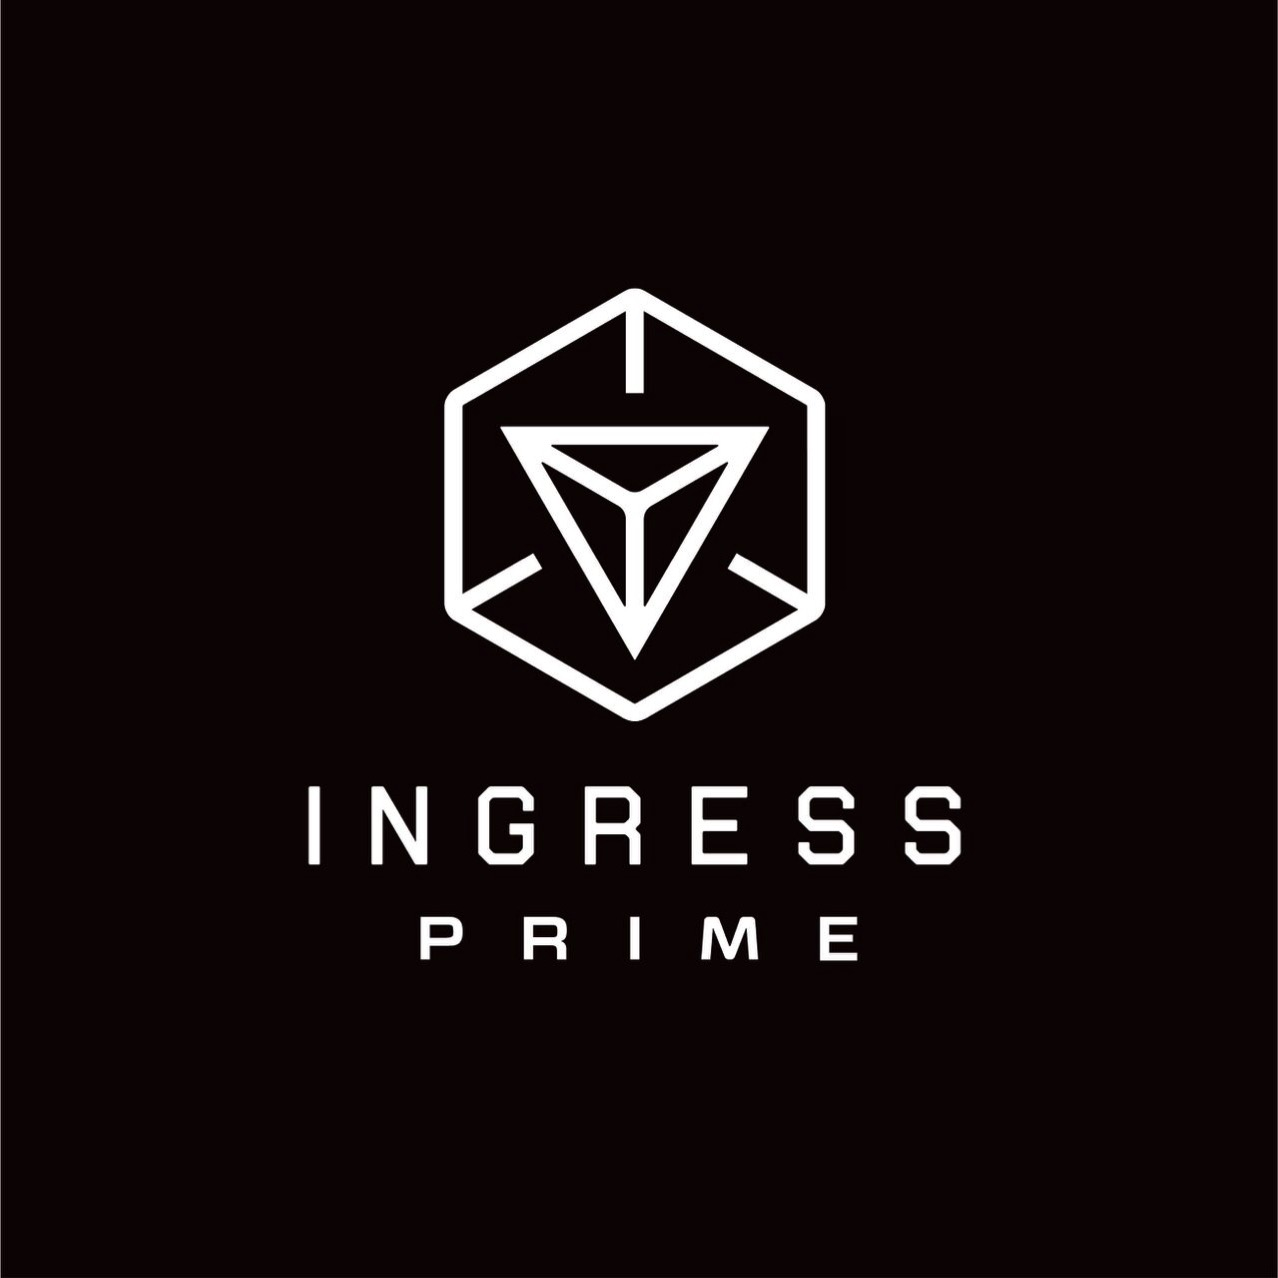 Ingress prime black